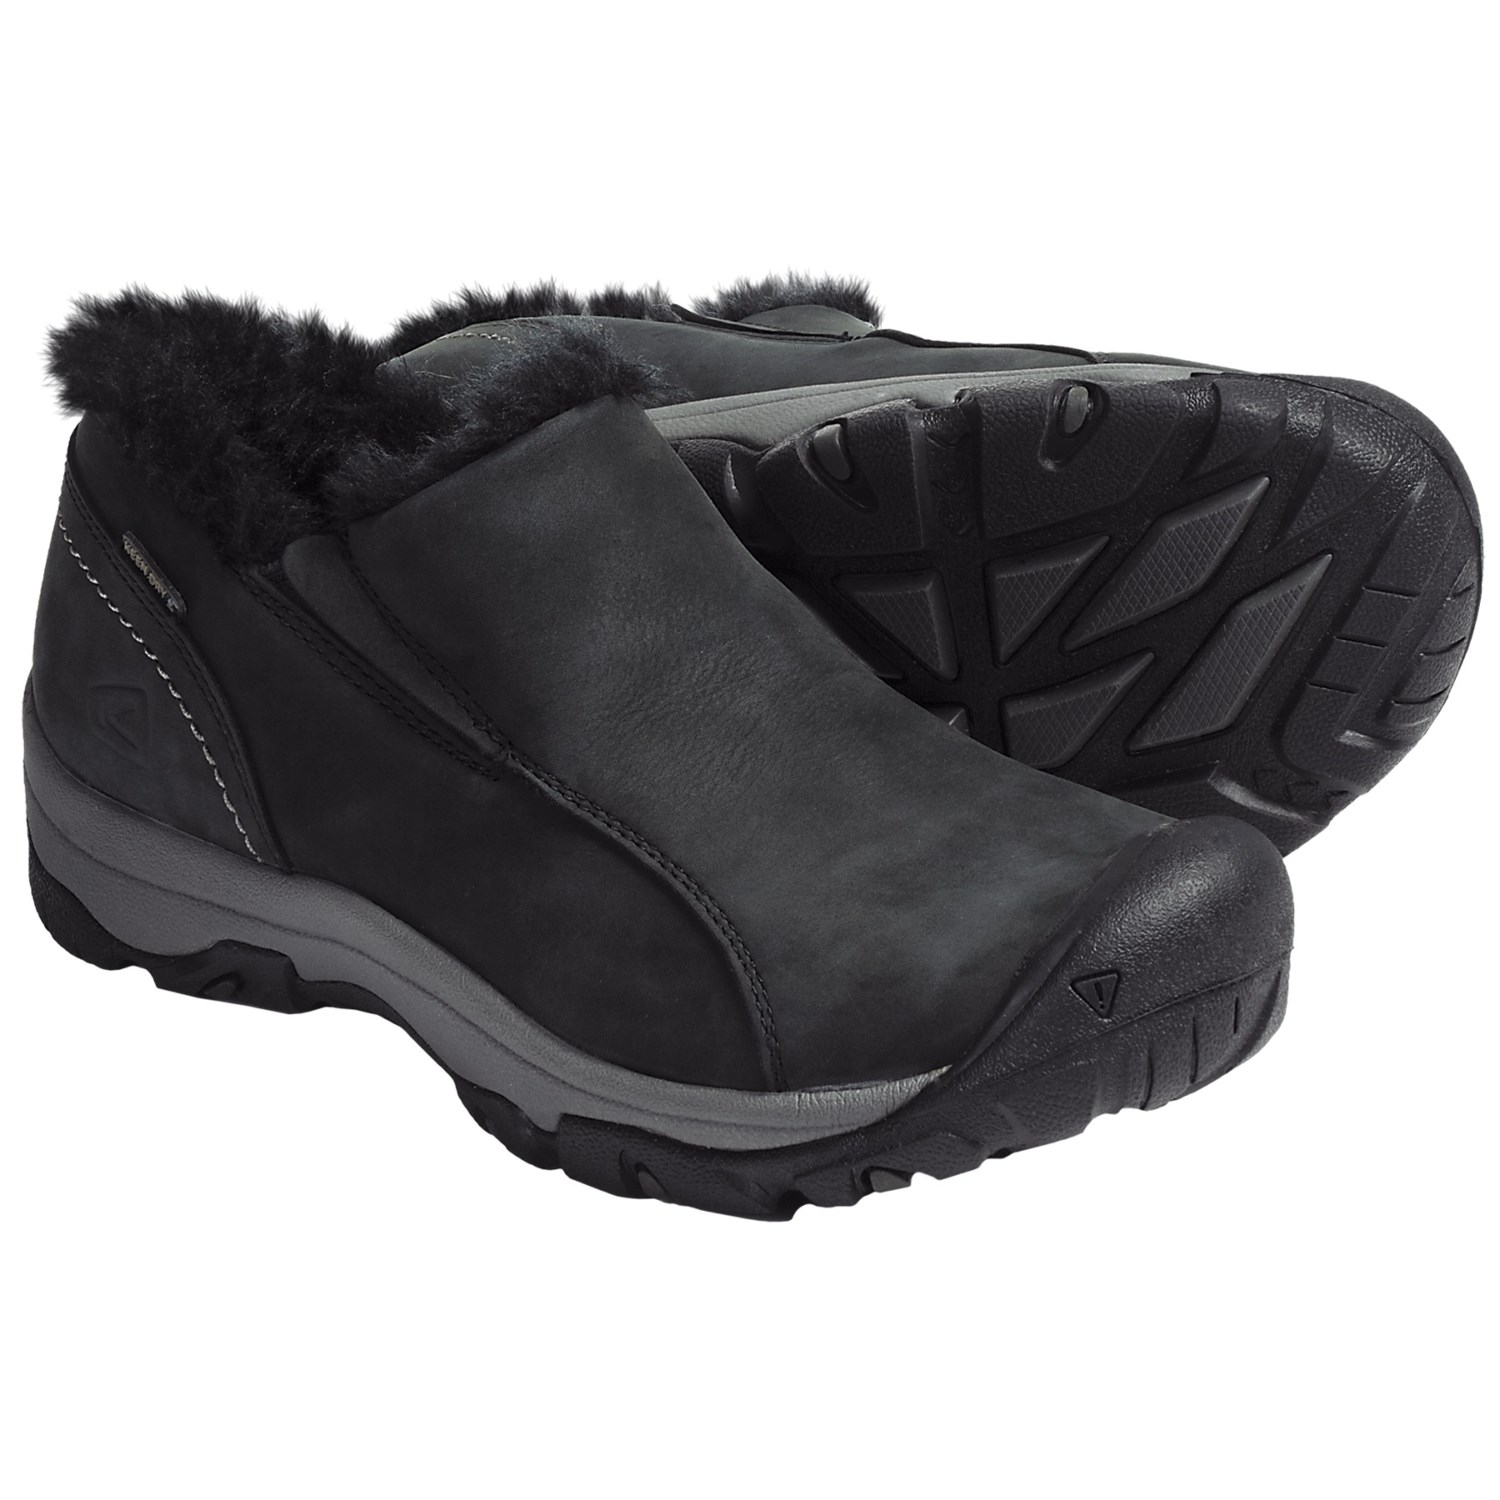 Winter Slip-On Waterproof Shoes for Women